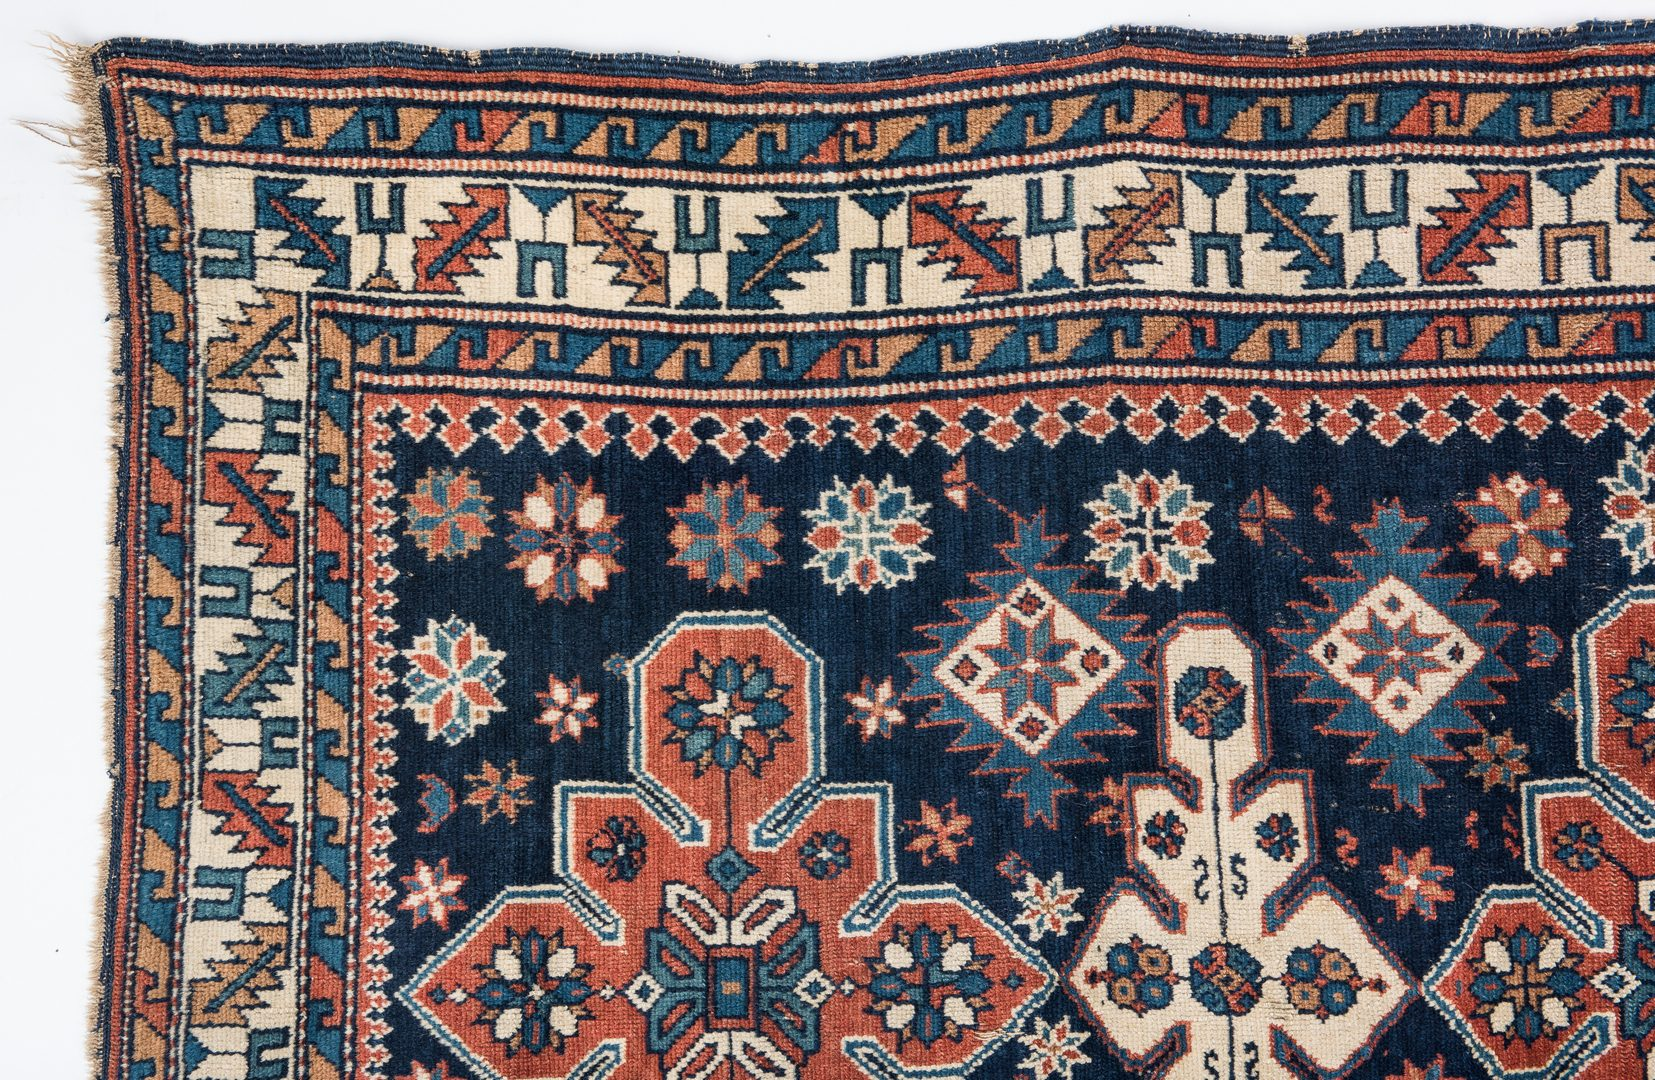 Lot 323: Antique Caucasian Kazak Area Rug